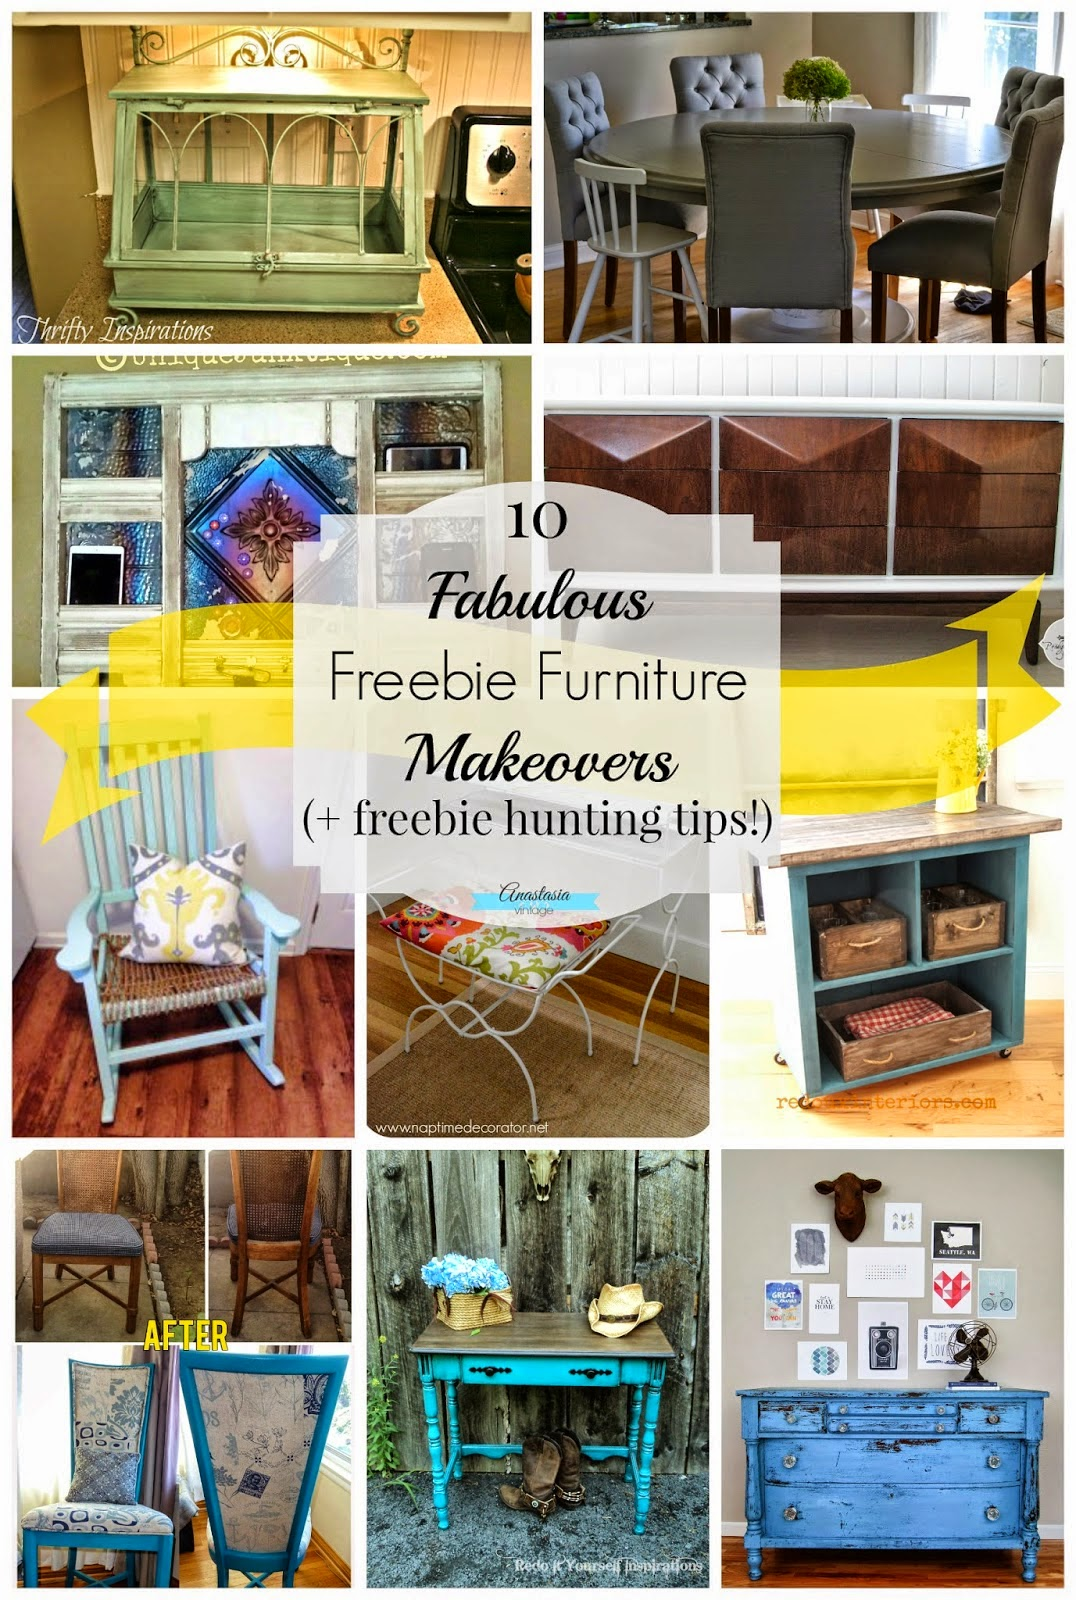 http://anastasiavintagehome.blogspot.ca/2014/11/10-fabulous-freebie-furniture-makeovers.html